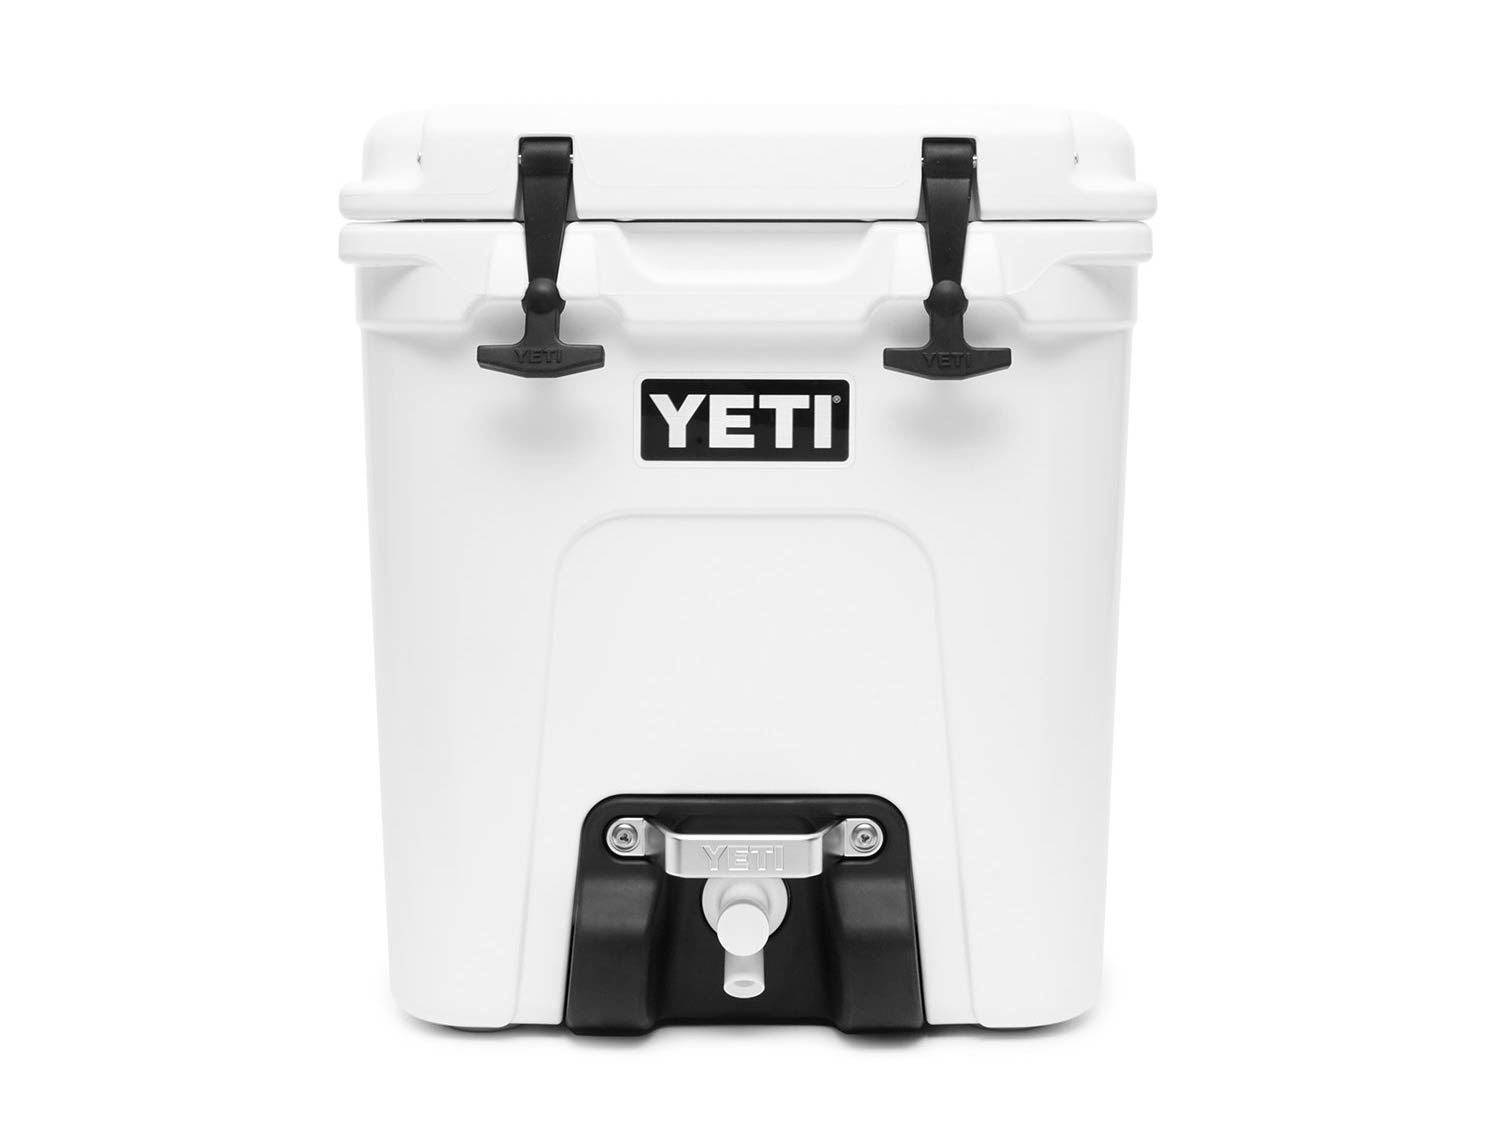 YETI Silo 6 Gallon Water Cooler